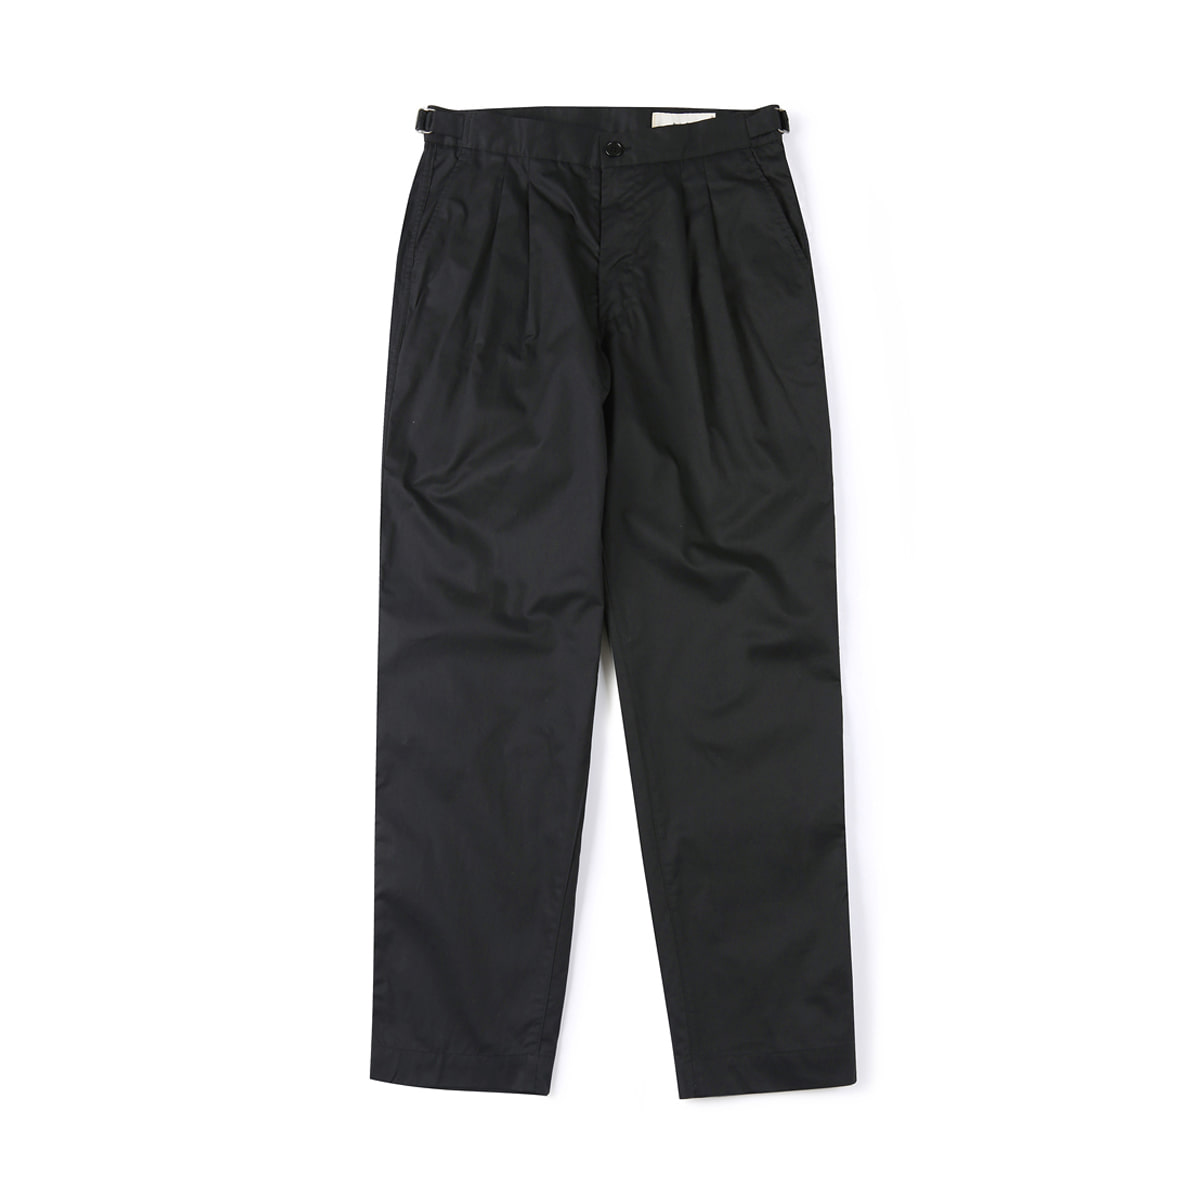 [SHIRTER] HARD WASHER COTTON PANTS 'BLACK'